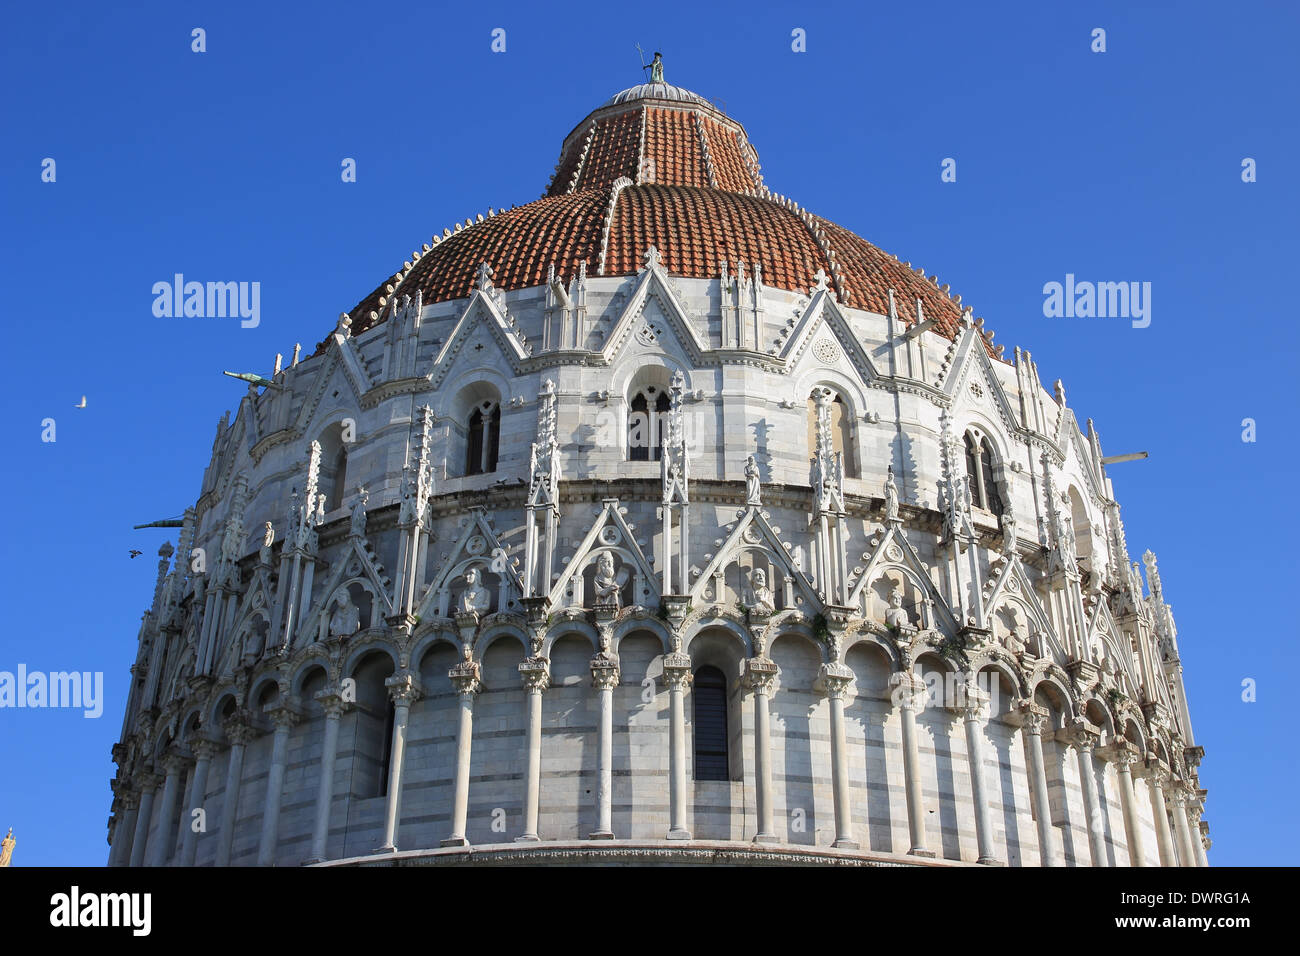 the Baptistery in Miracles square, Pisa, Italy Stock Photo